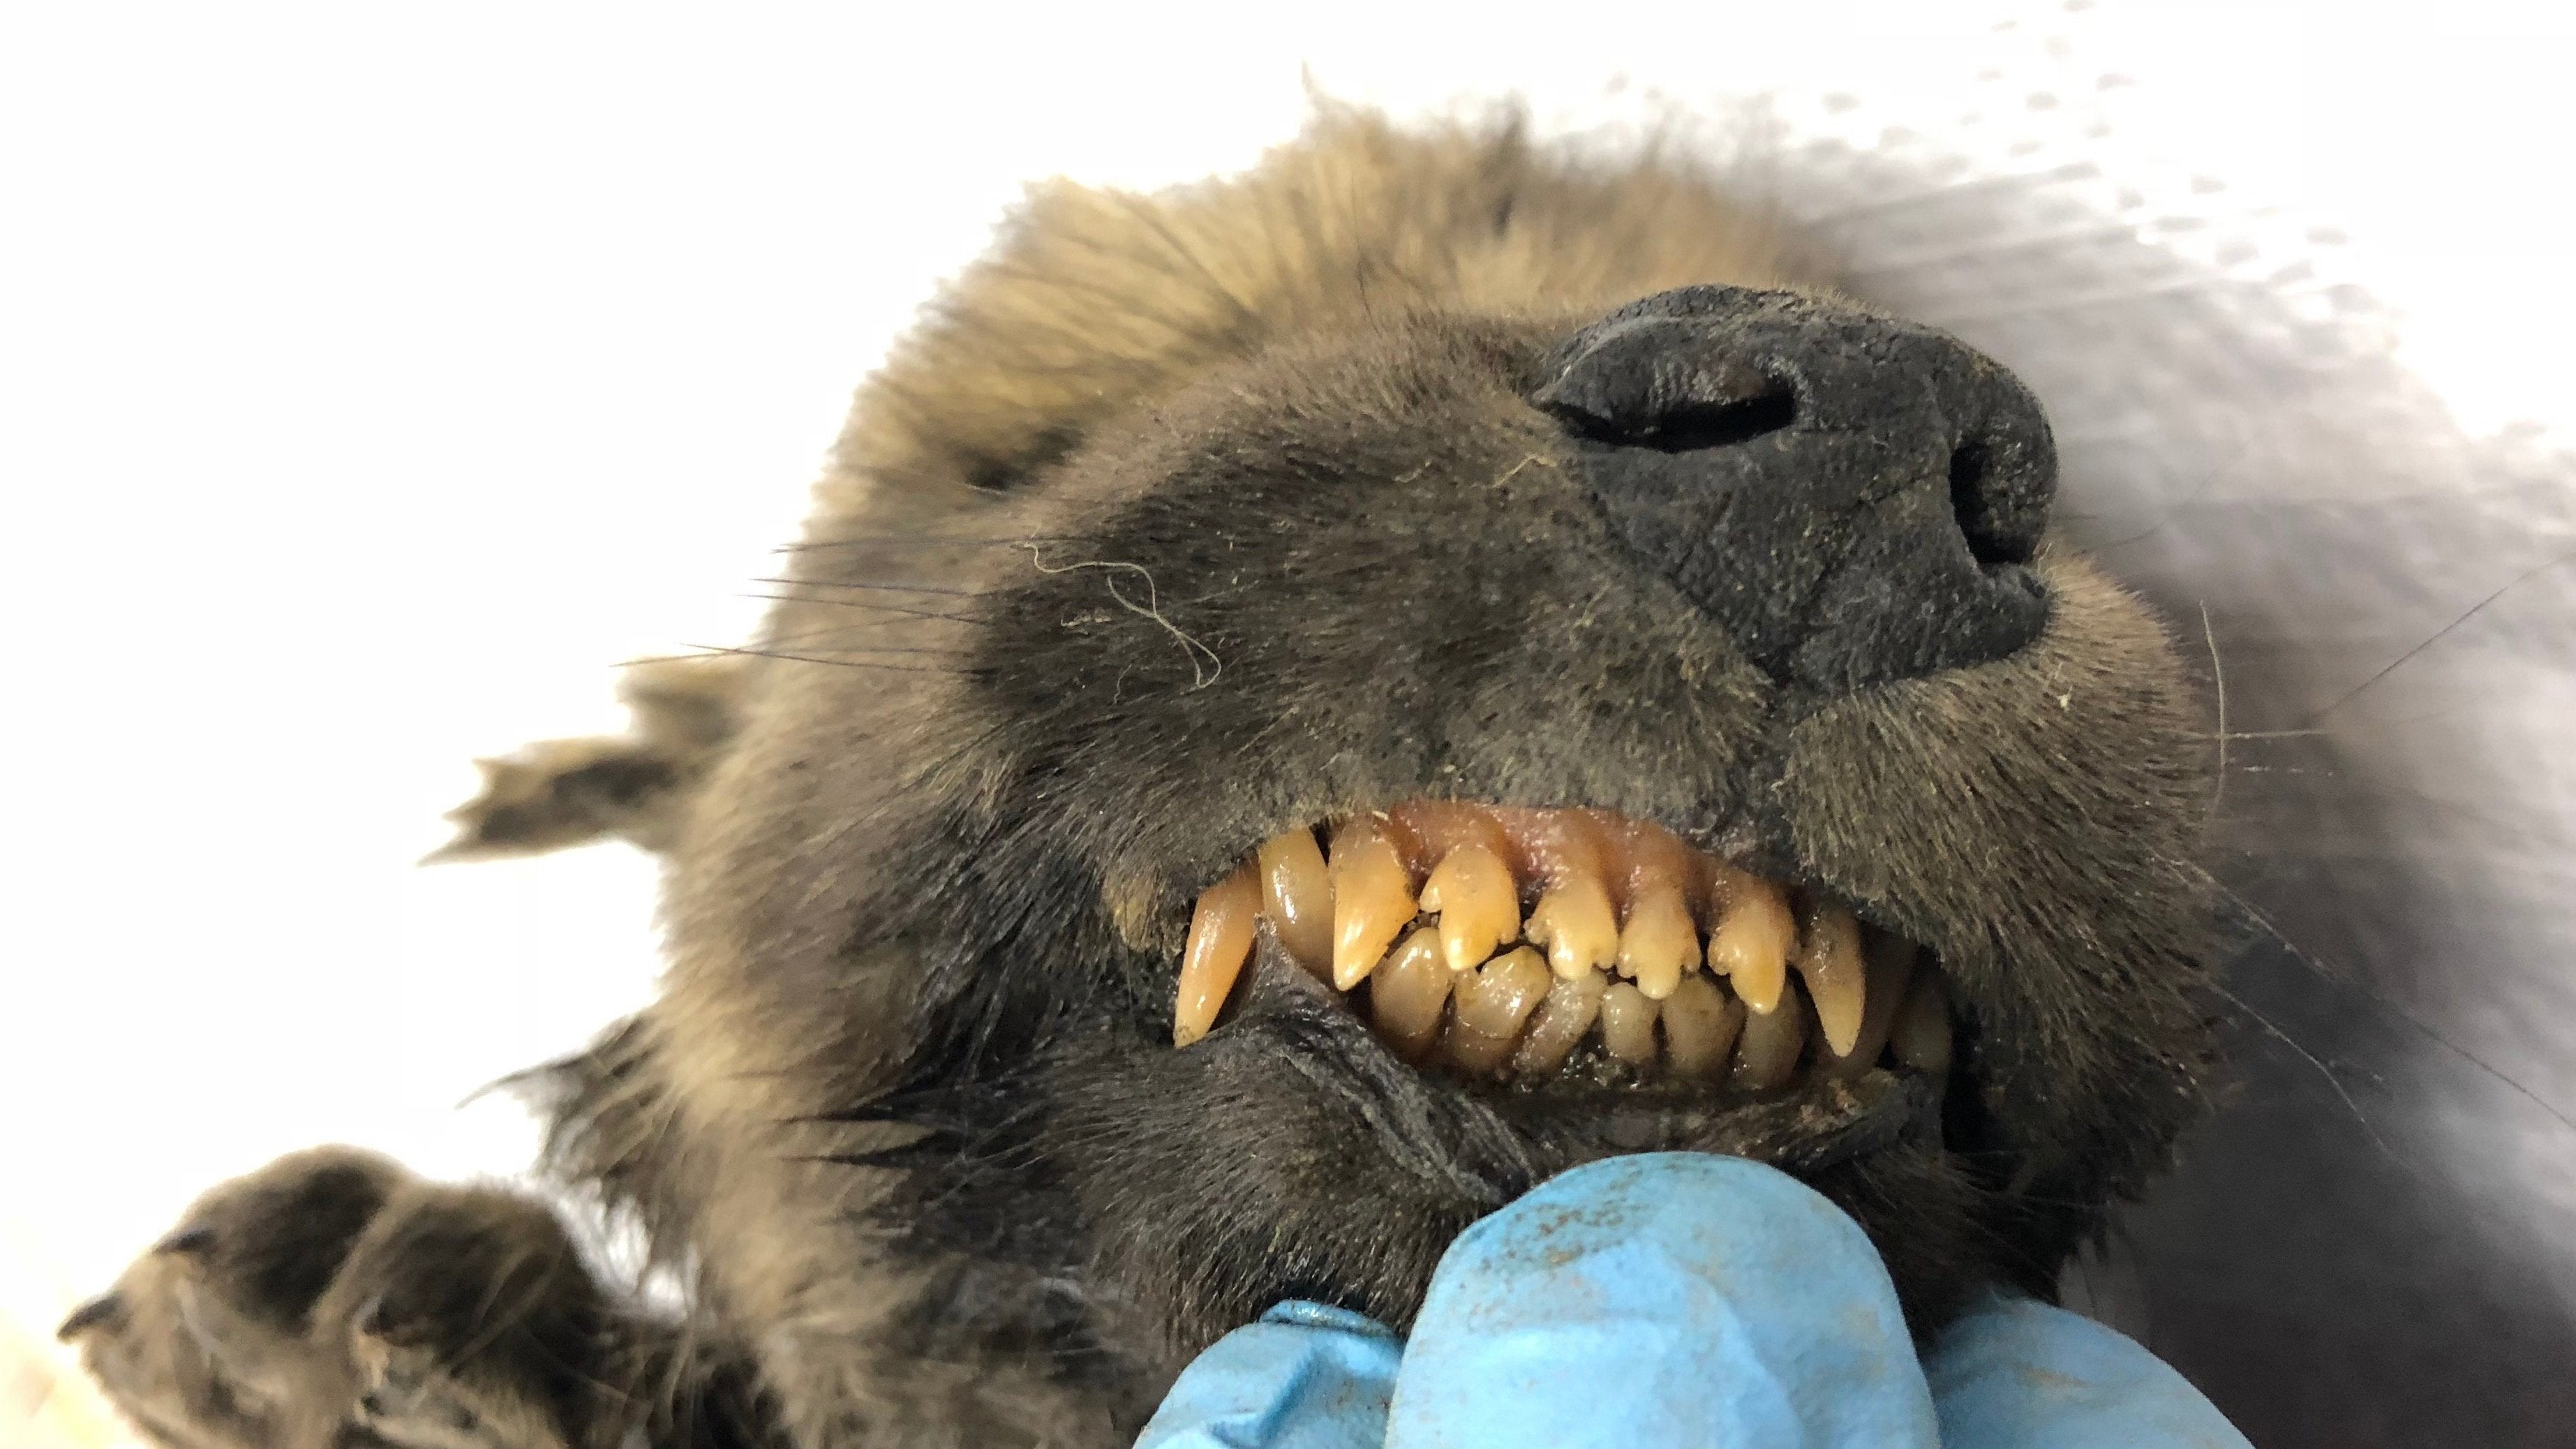 Found Frozen And Almost Perfectly Preserved In Permafrost, This 18,000-Year-Old Puppy Could Be A Huge Deal